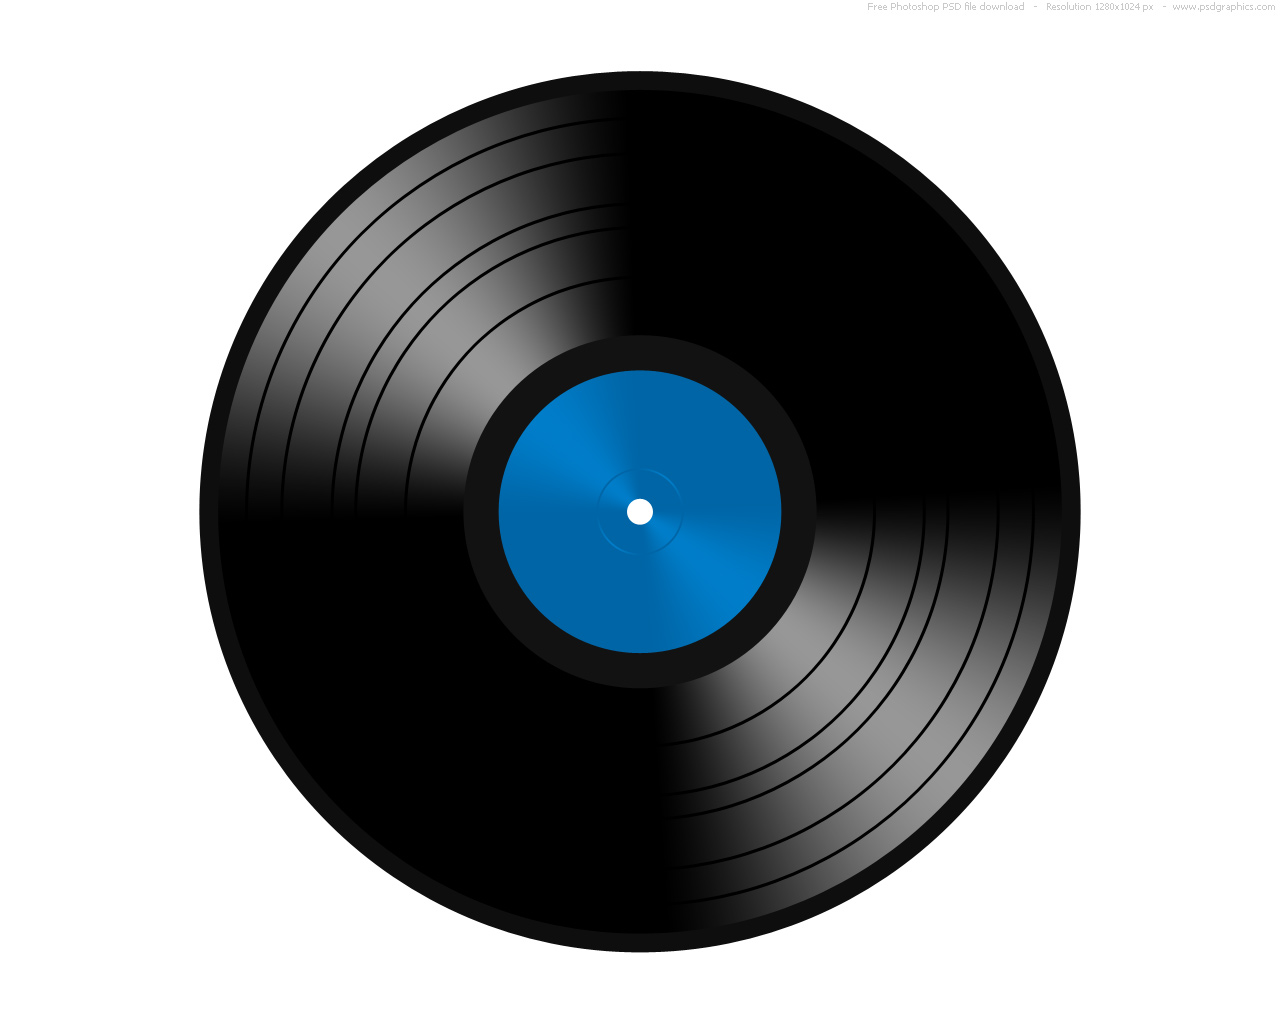 Full size – JPG preview: Vinyl record